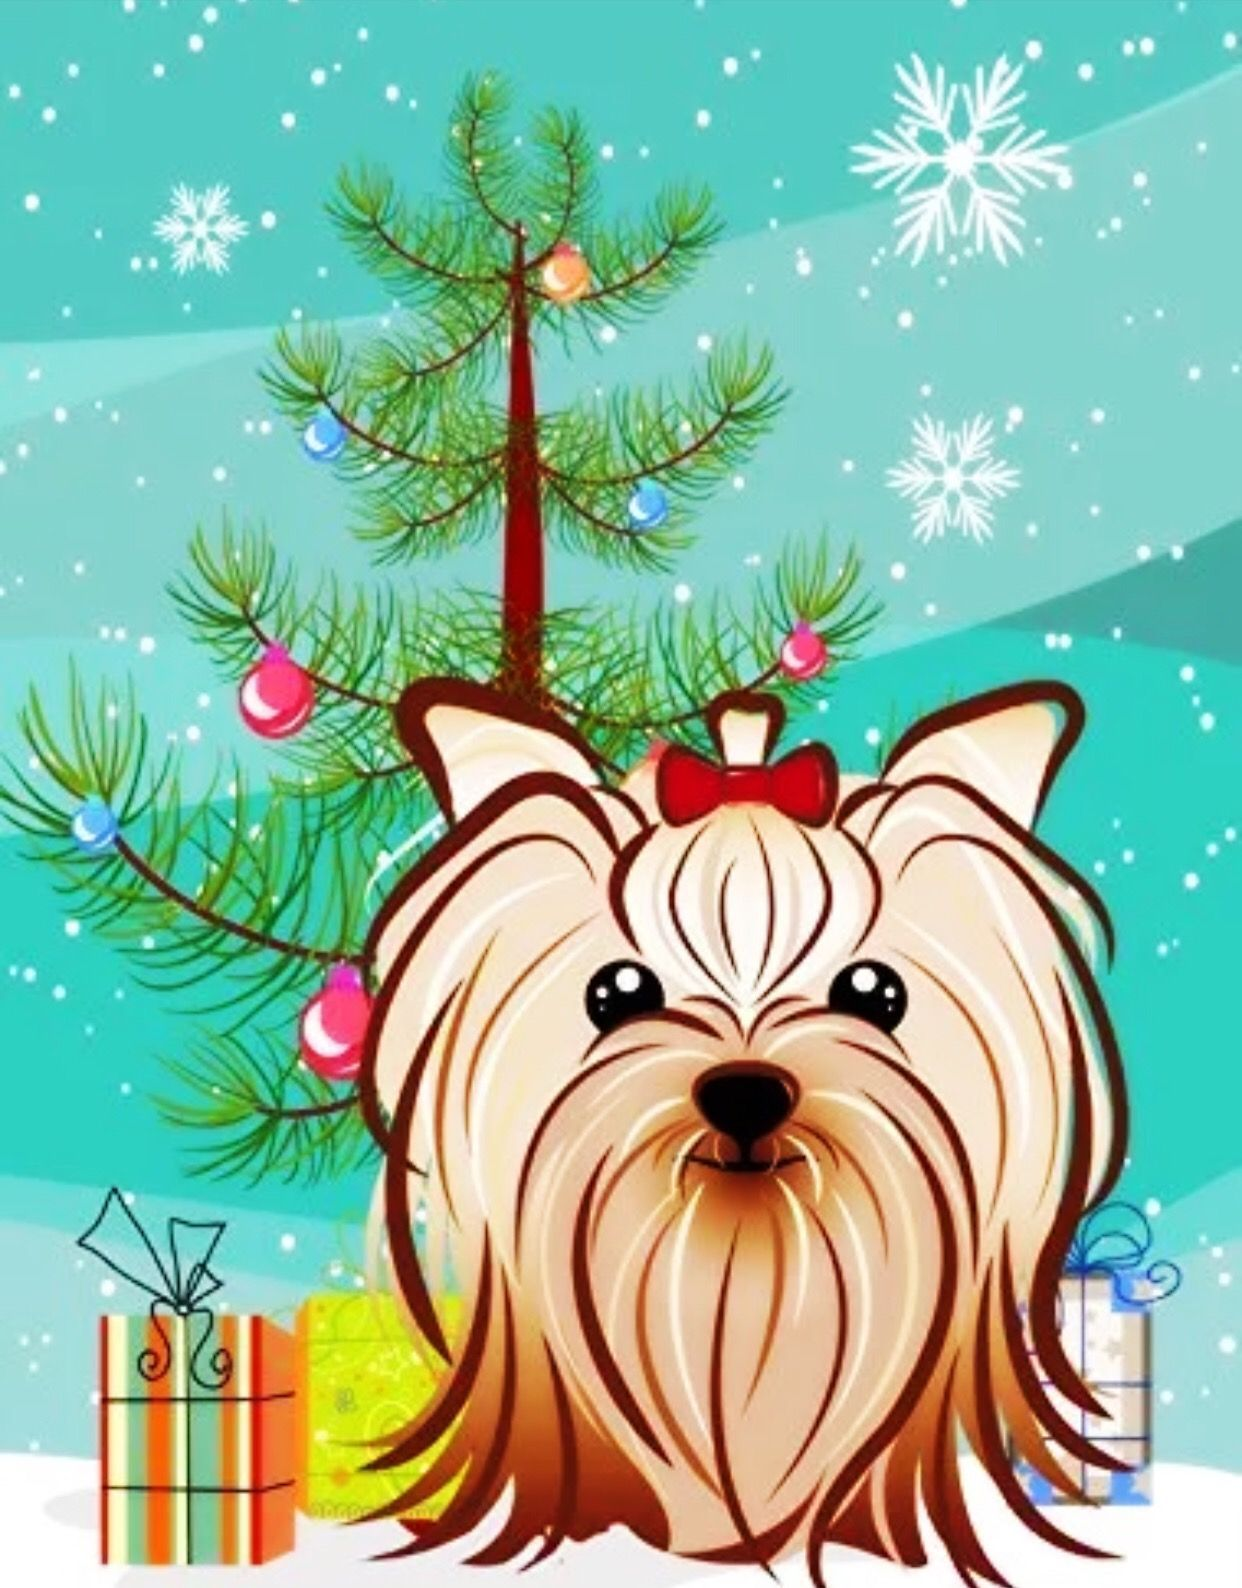 Merry Christmas Yorkshireterrier Yorkie Yorkshire Terrier Yorkie Yorkshire Terrier